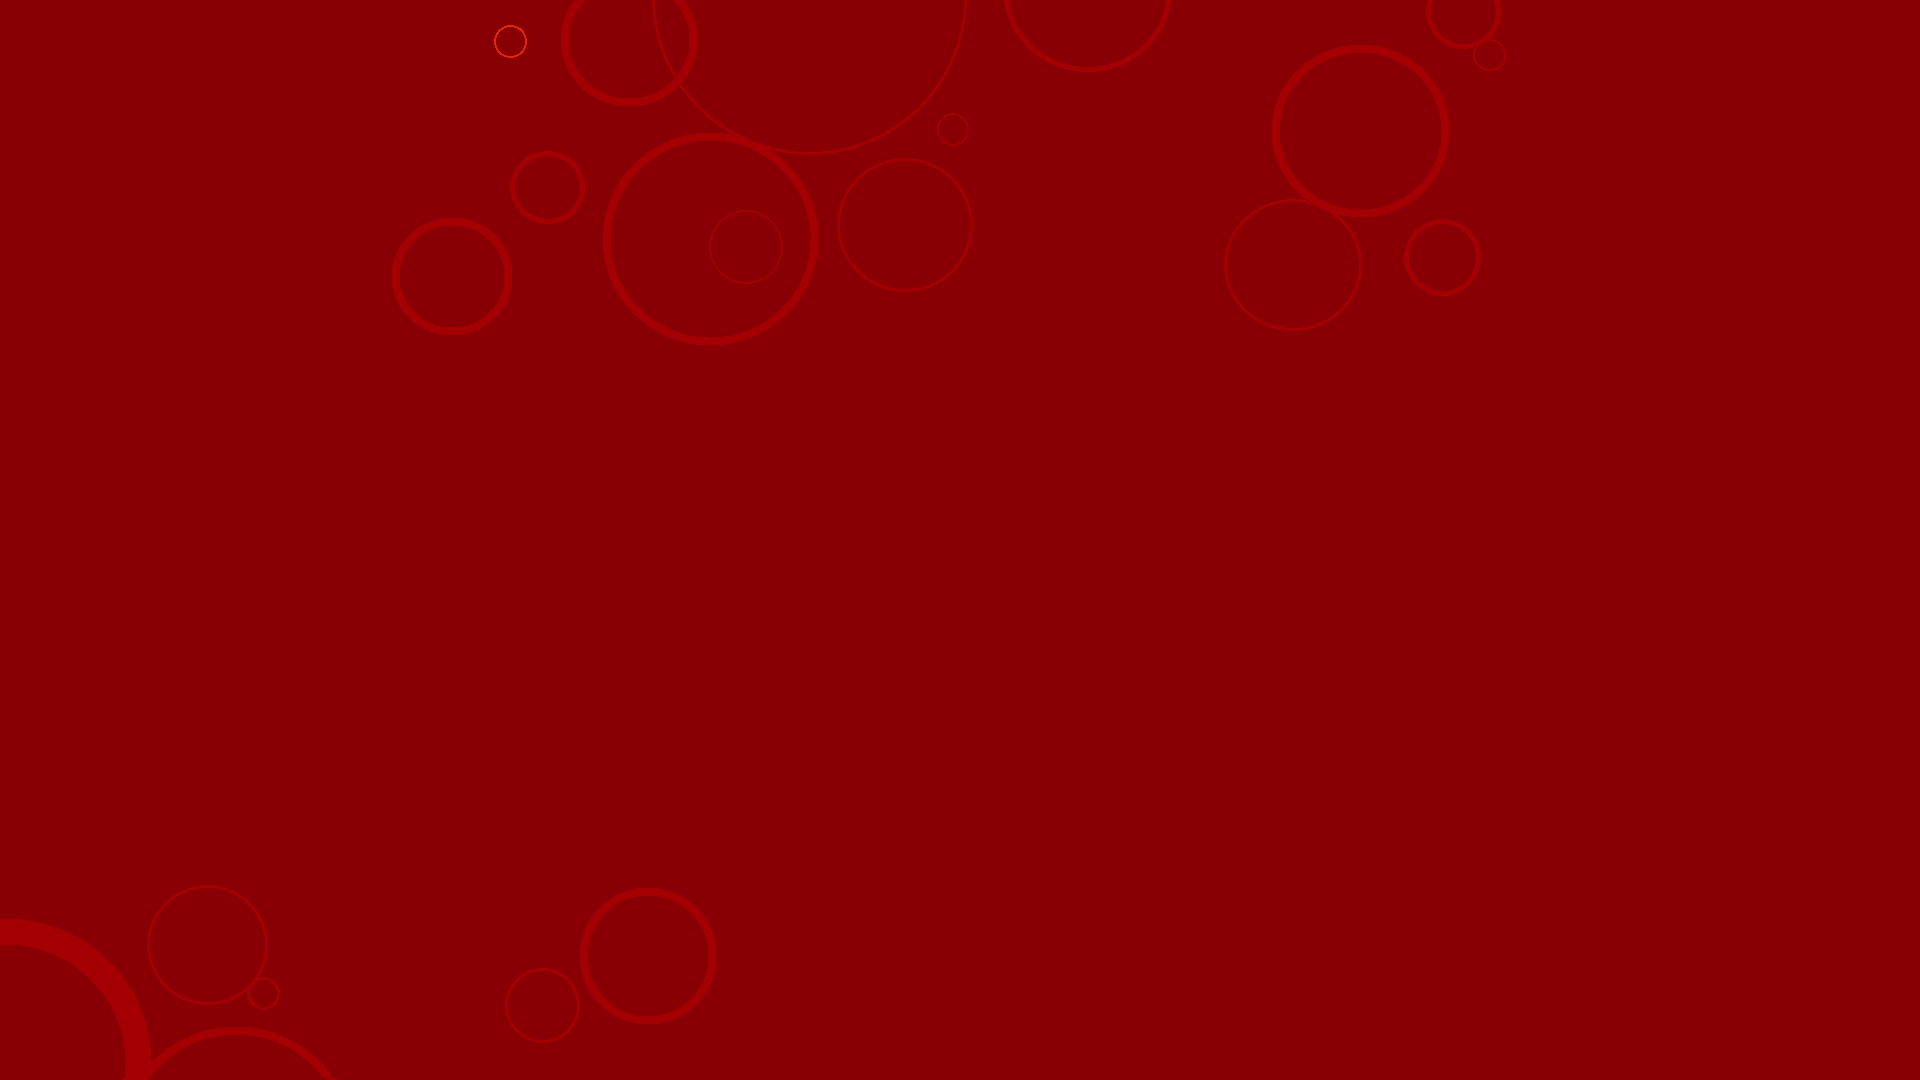 Dark Red Backgrounds 1920x1080